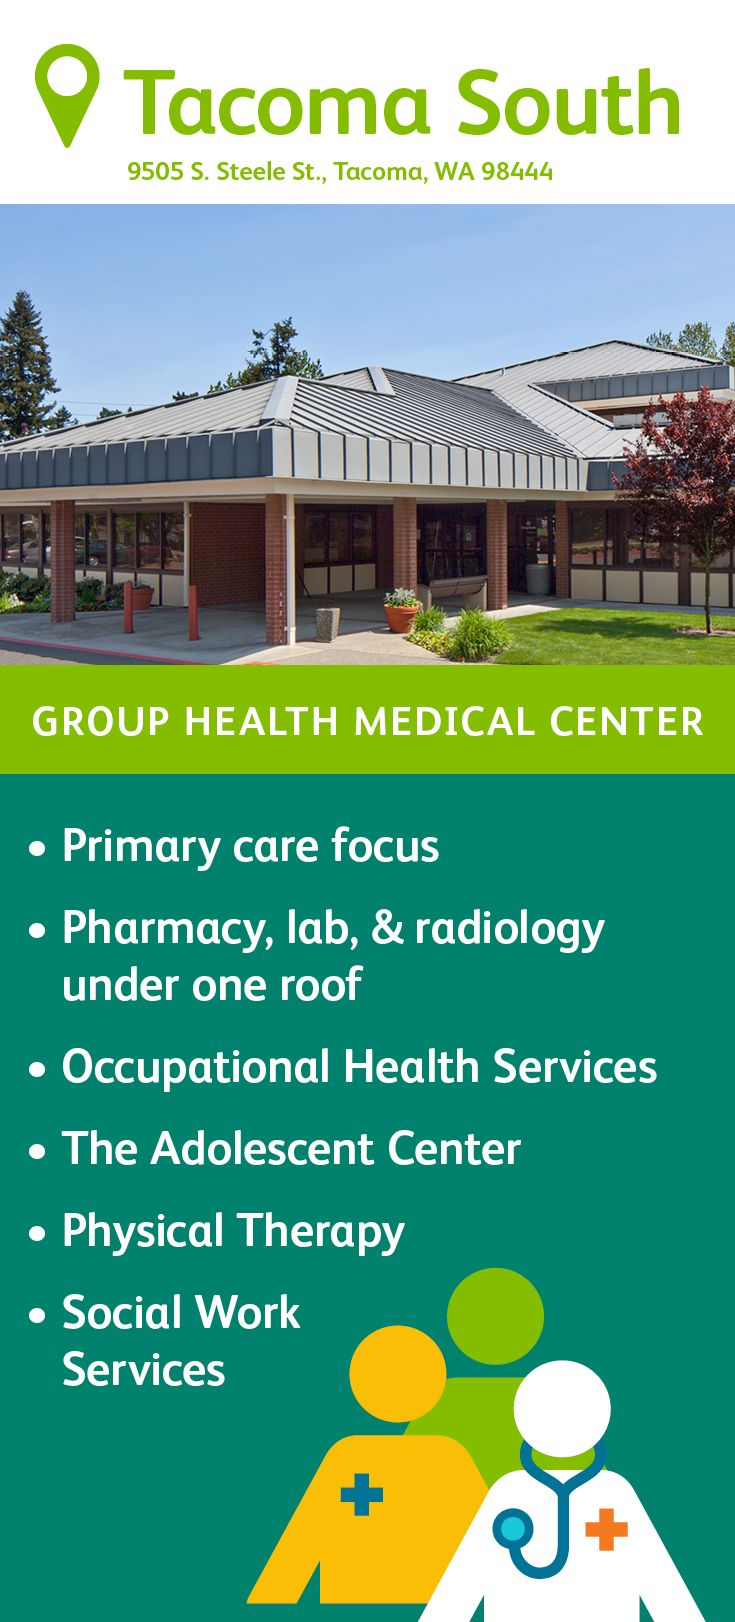 Health south physical therapy - The Group Health Tacoma South Medical Center Features Primary Care Delivered By Family Medicine And Pediatric